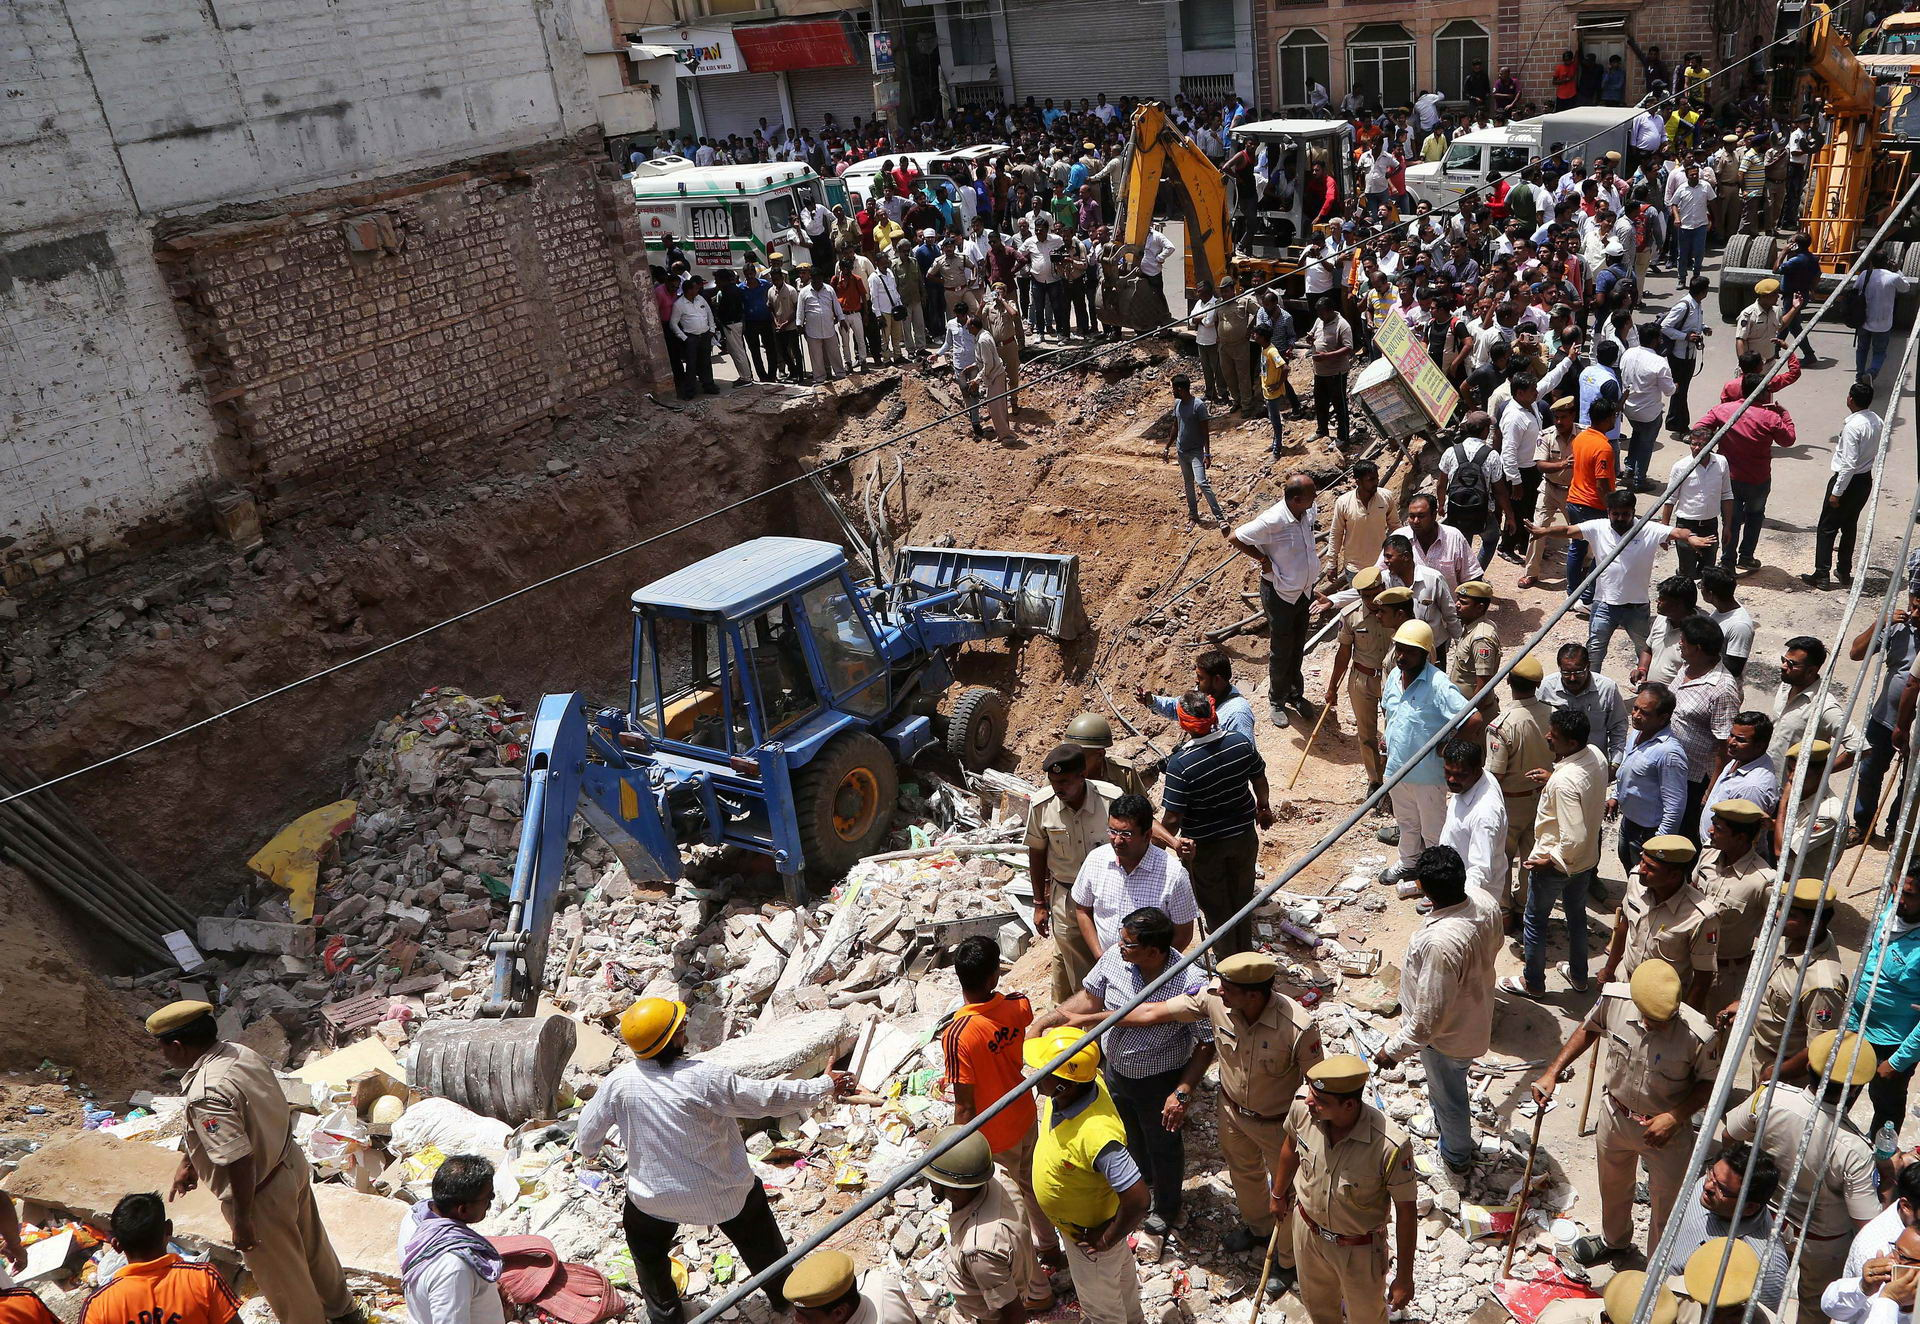 Police and rescue workers look for survivors amidst the rubble at the site of a collapsed building in Jodhpur